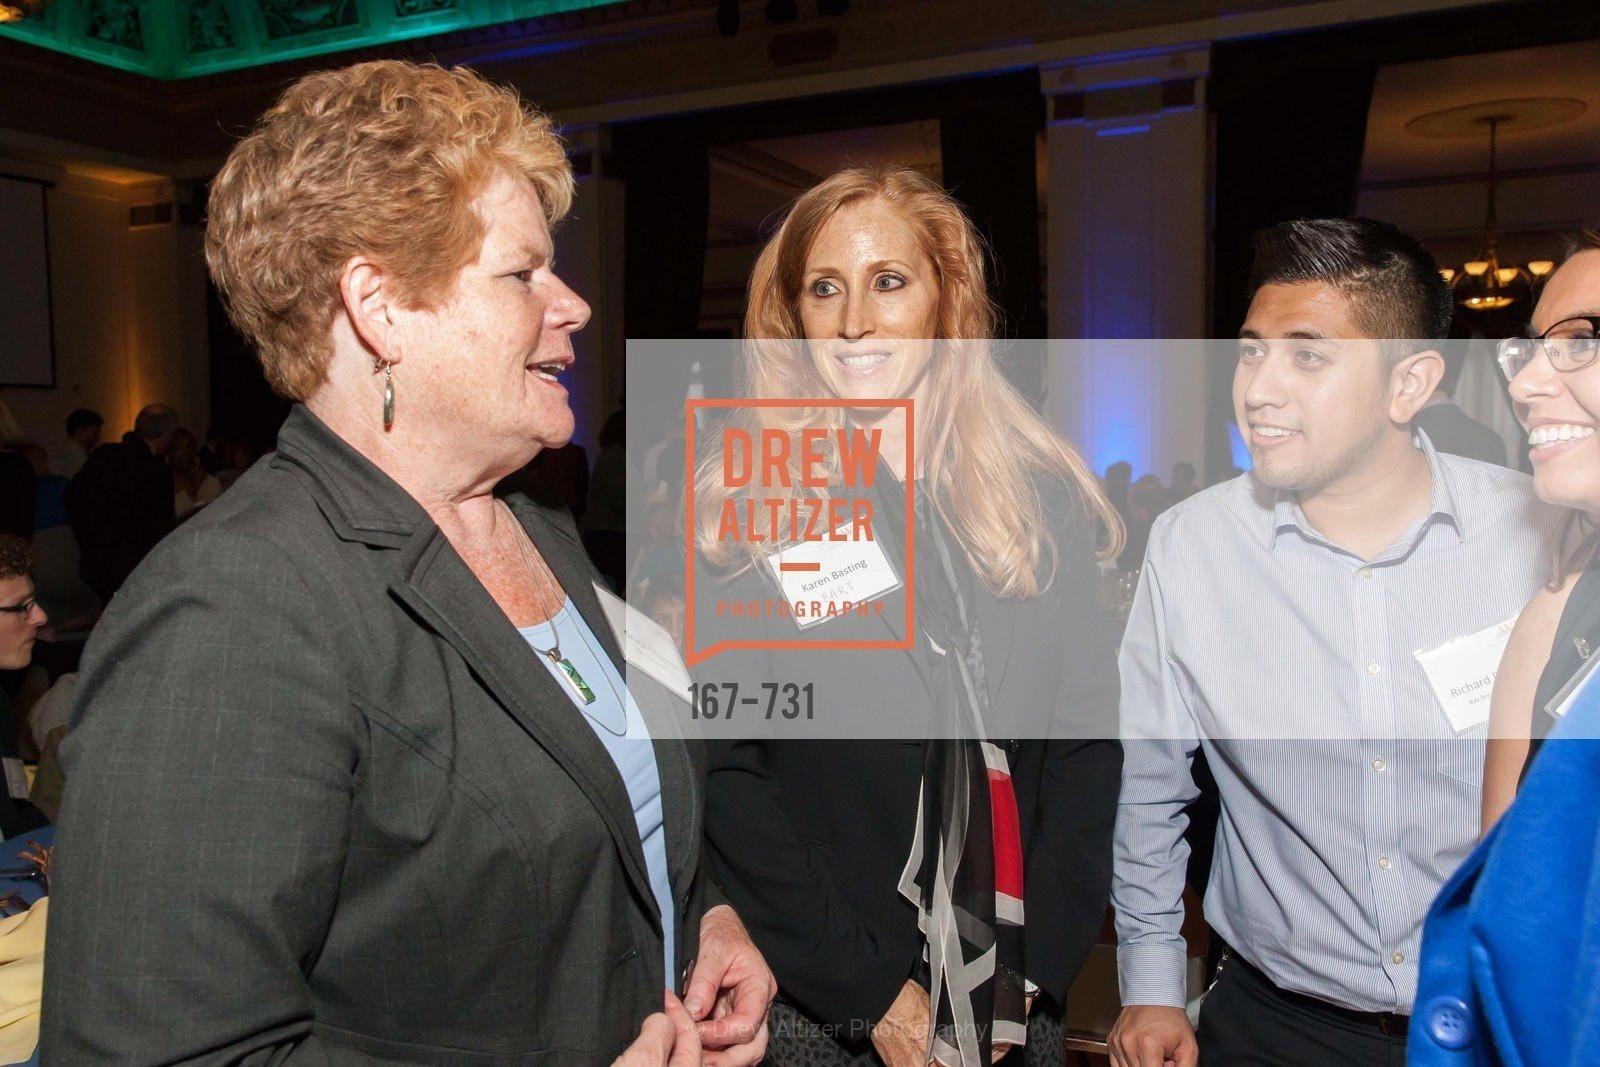 Grace Crunican, Karen Basting, Richard Fuentes, WOMEN'S TRANSPORTATION SEMINAR SF Bay Area Chapter Annual Scholarship Awards, US, May 15th, 2015,Drew Altizer, Drew Altizer Photography, full-service event agency, private events, San Francisco photographer, photographer California